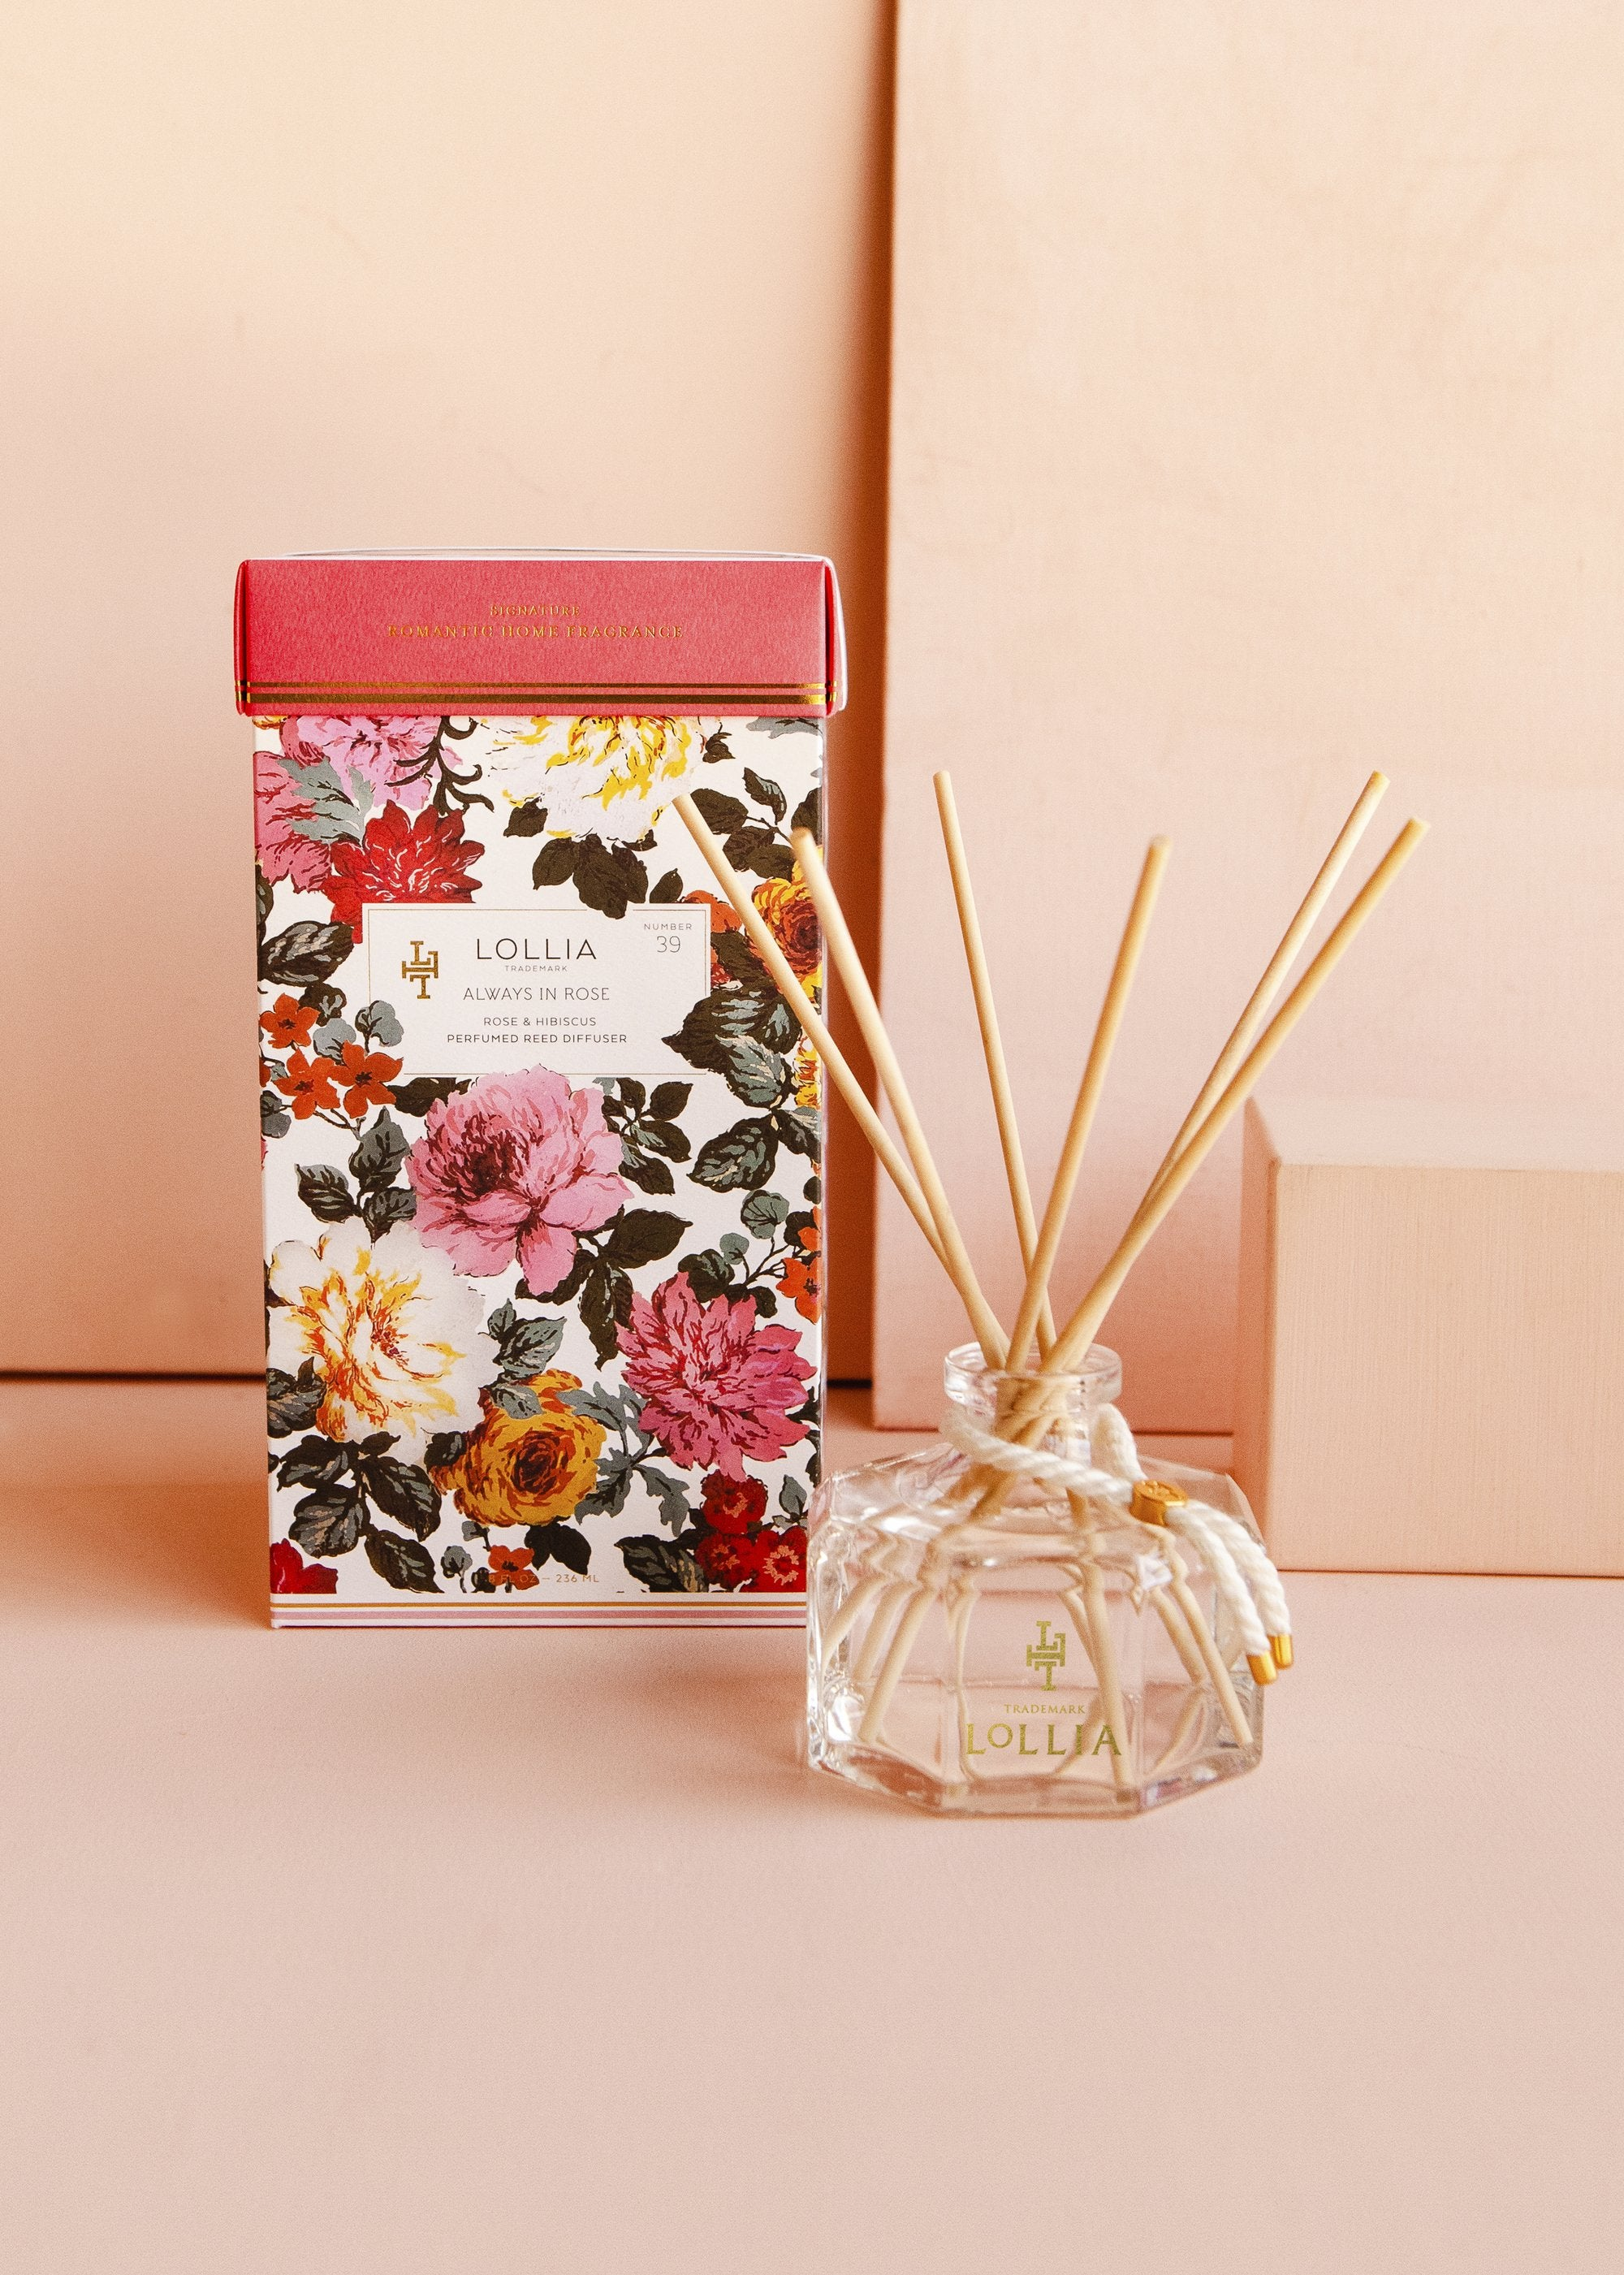 Always in Rose Perfumed Reed Diffuser